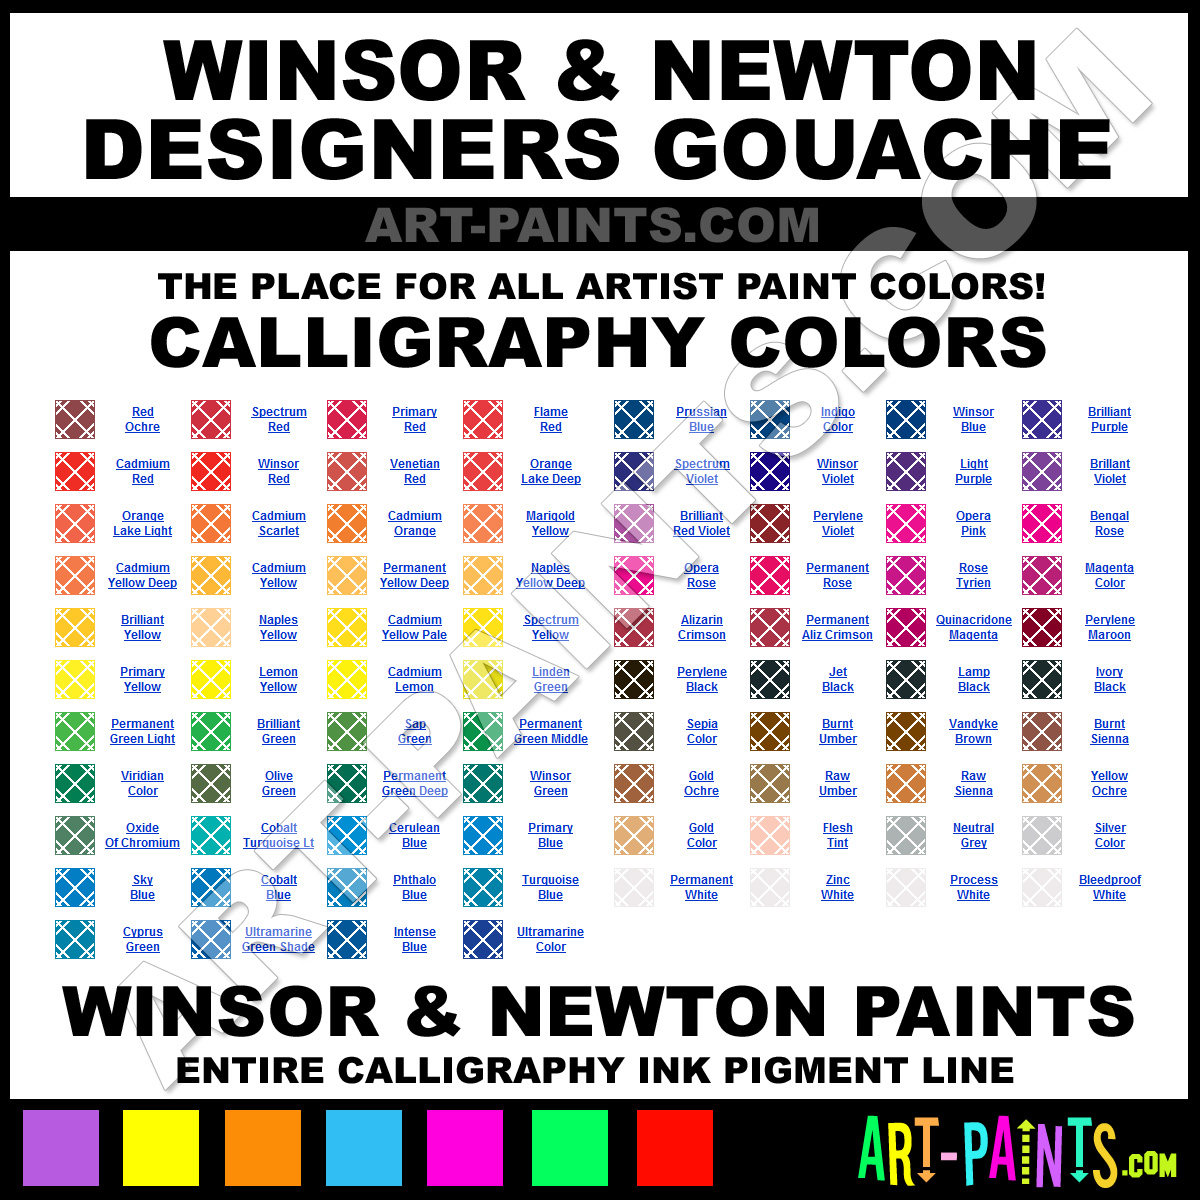 Winsor And Newton Designers Gouache Calligraphy Ink